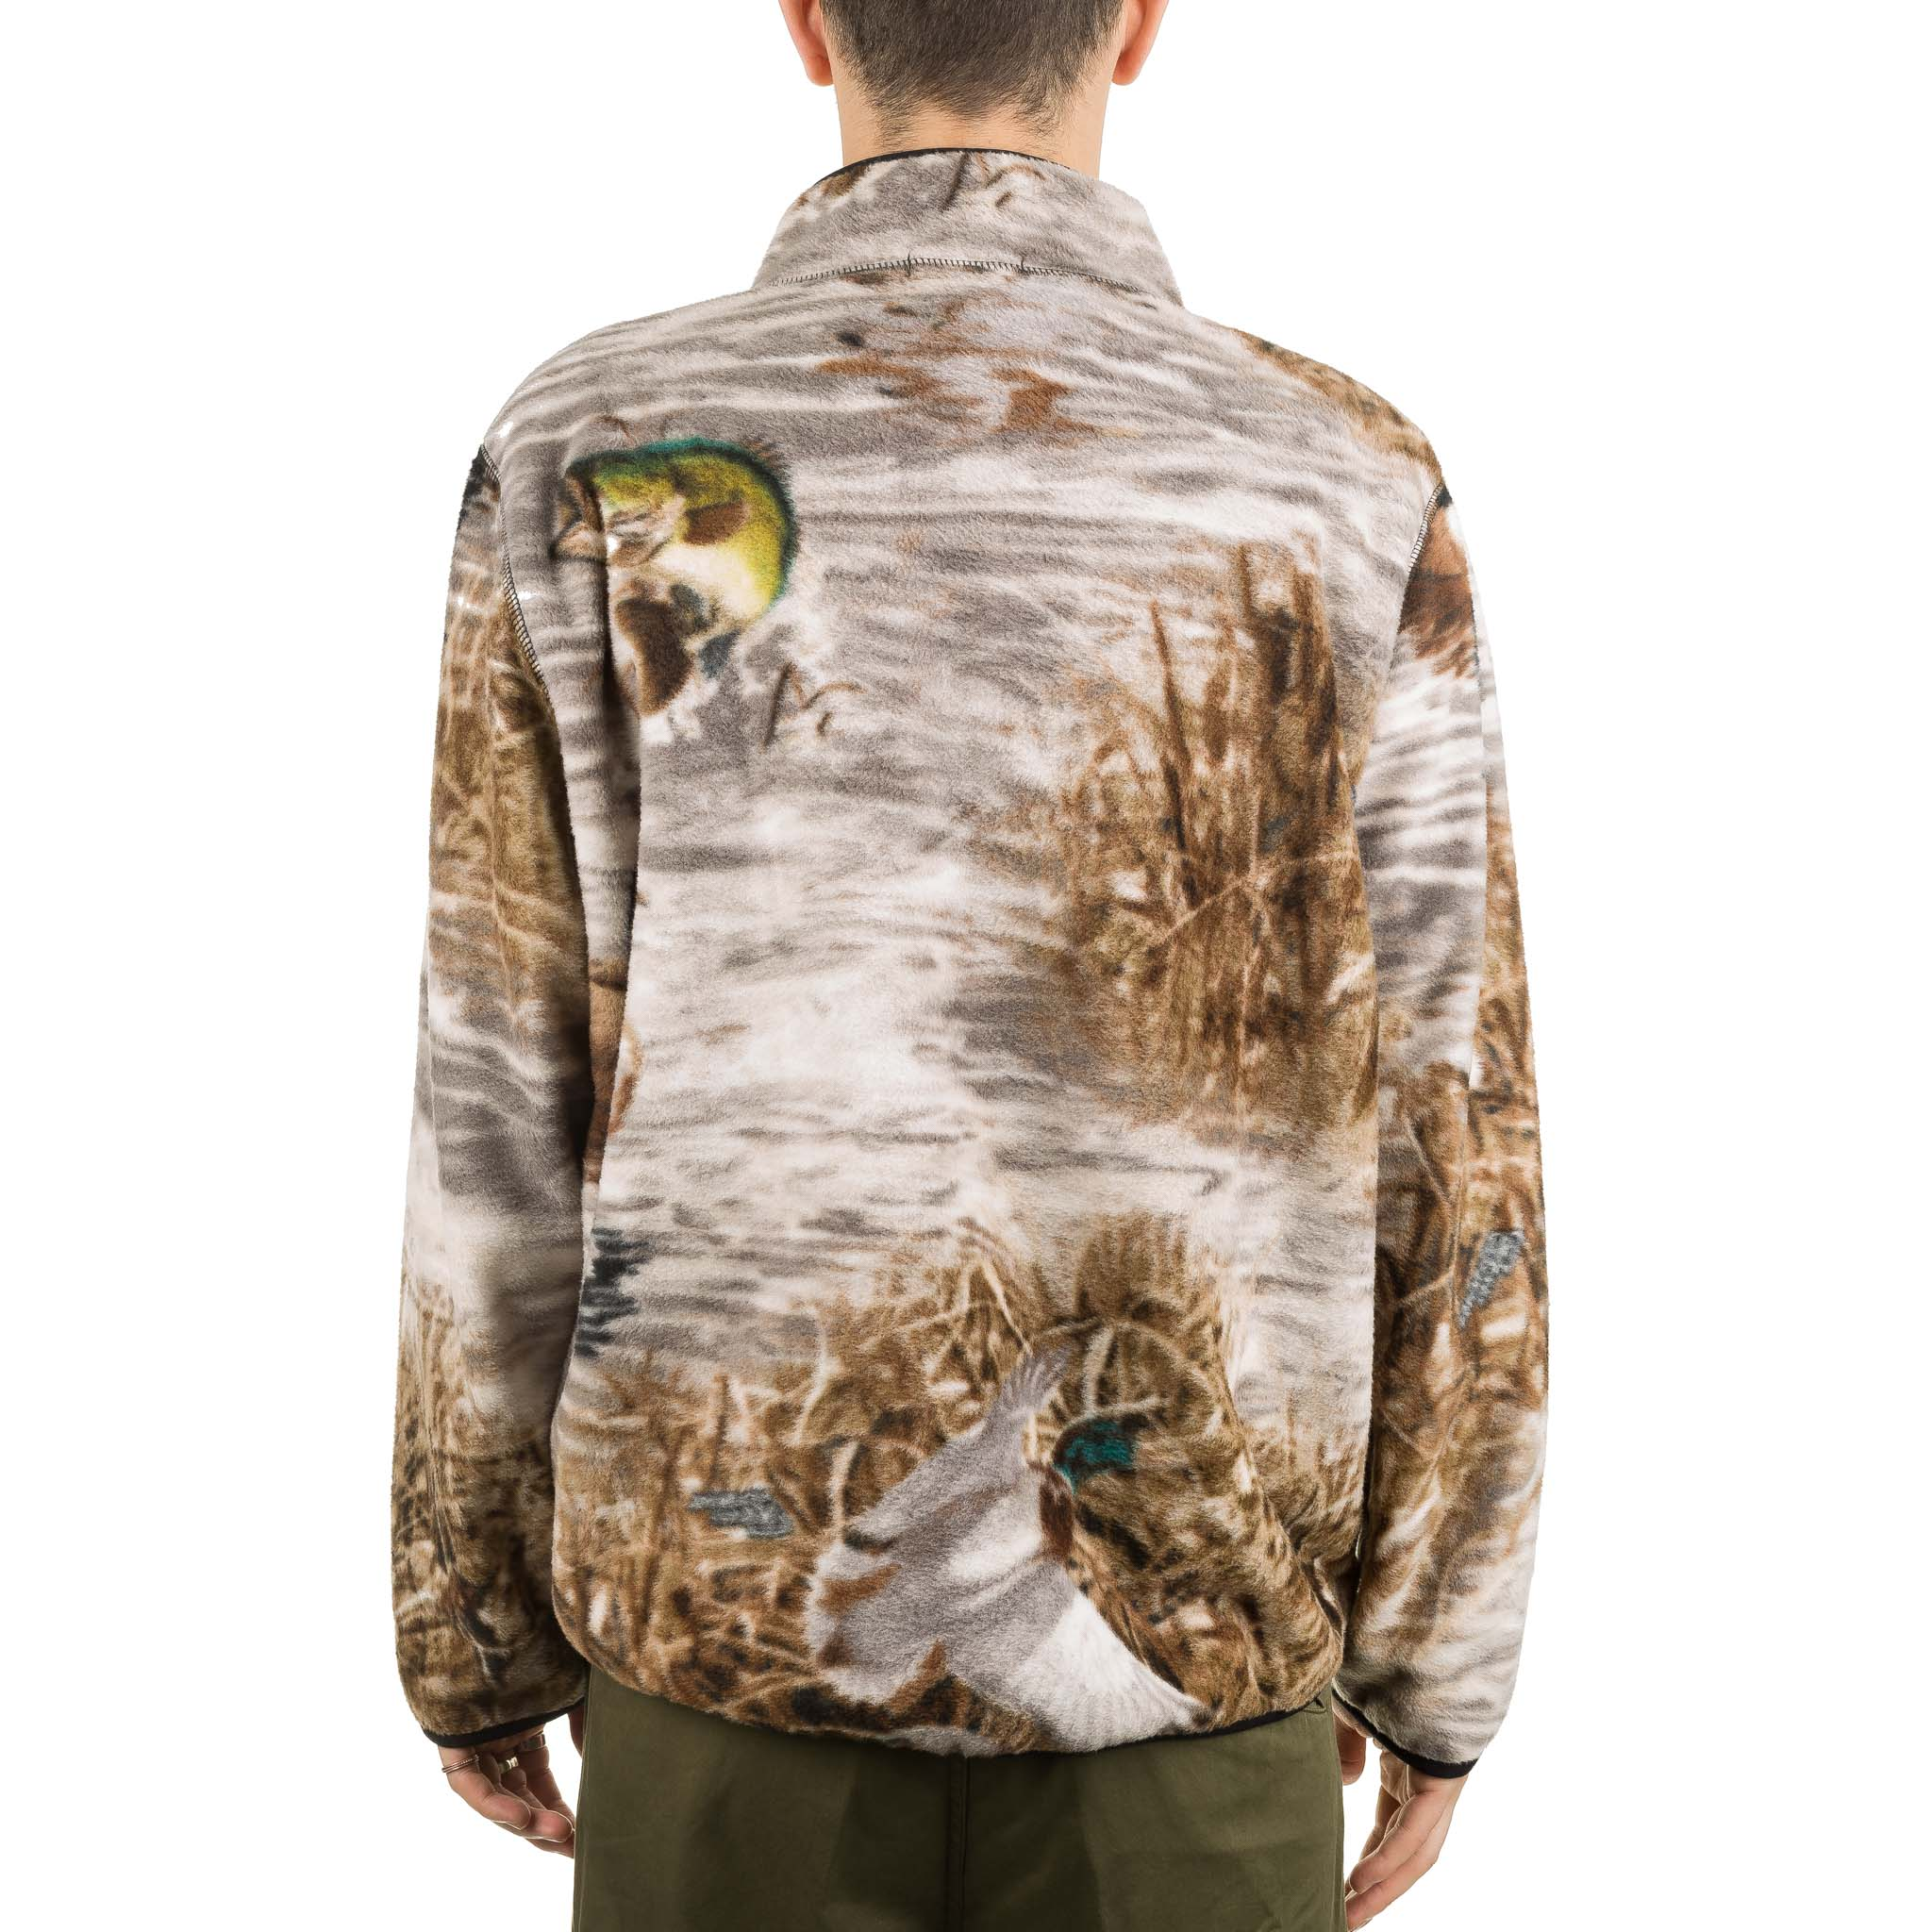 Ducks & Fish Fleece Half Zip Real Tree